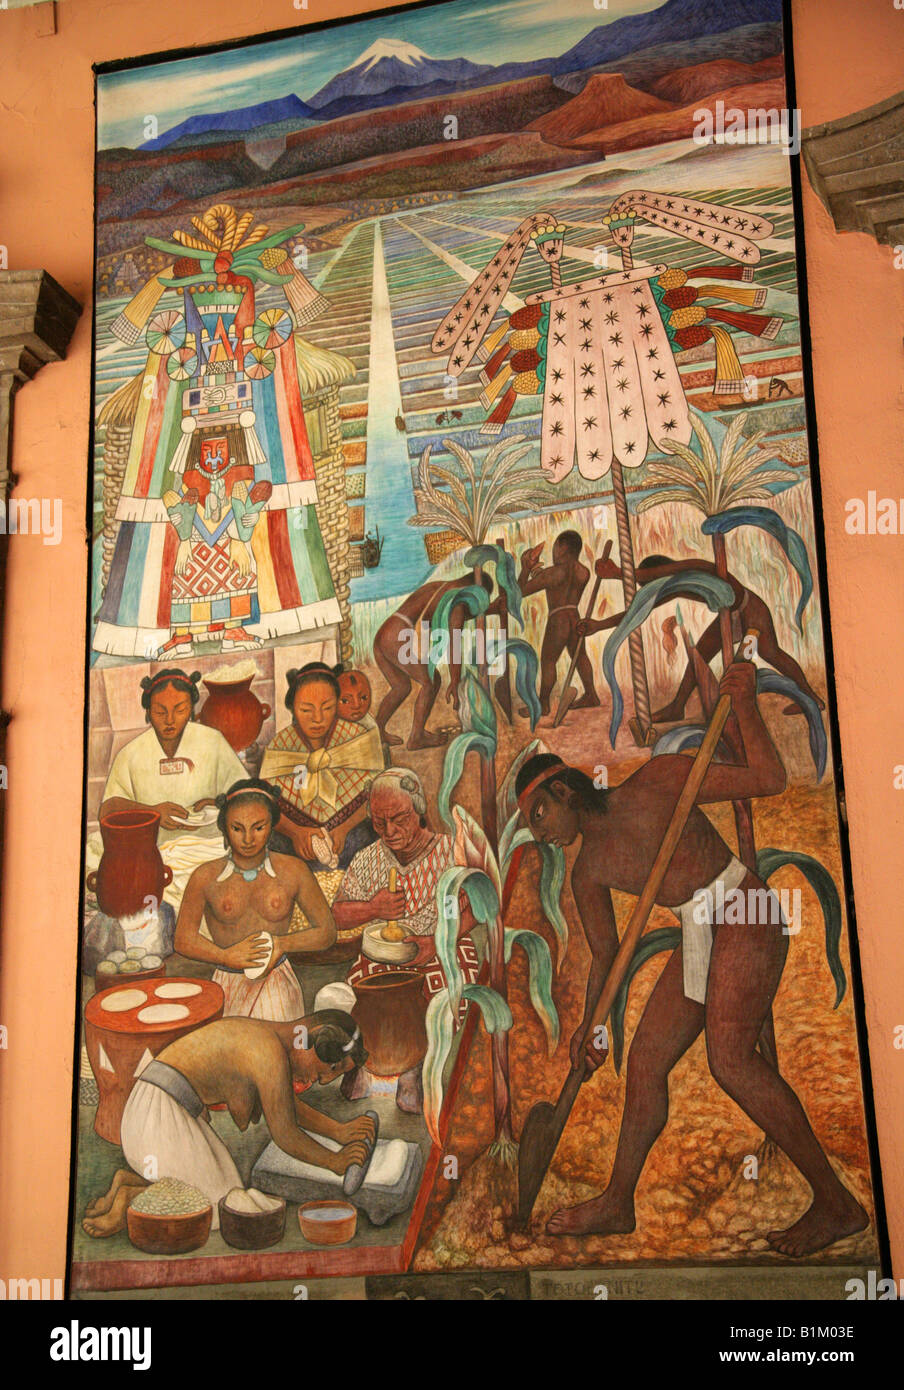 Mural in the national palace depicting life in ancient for Aztec mural painting